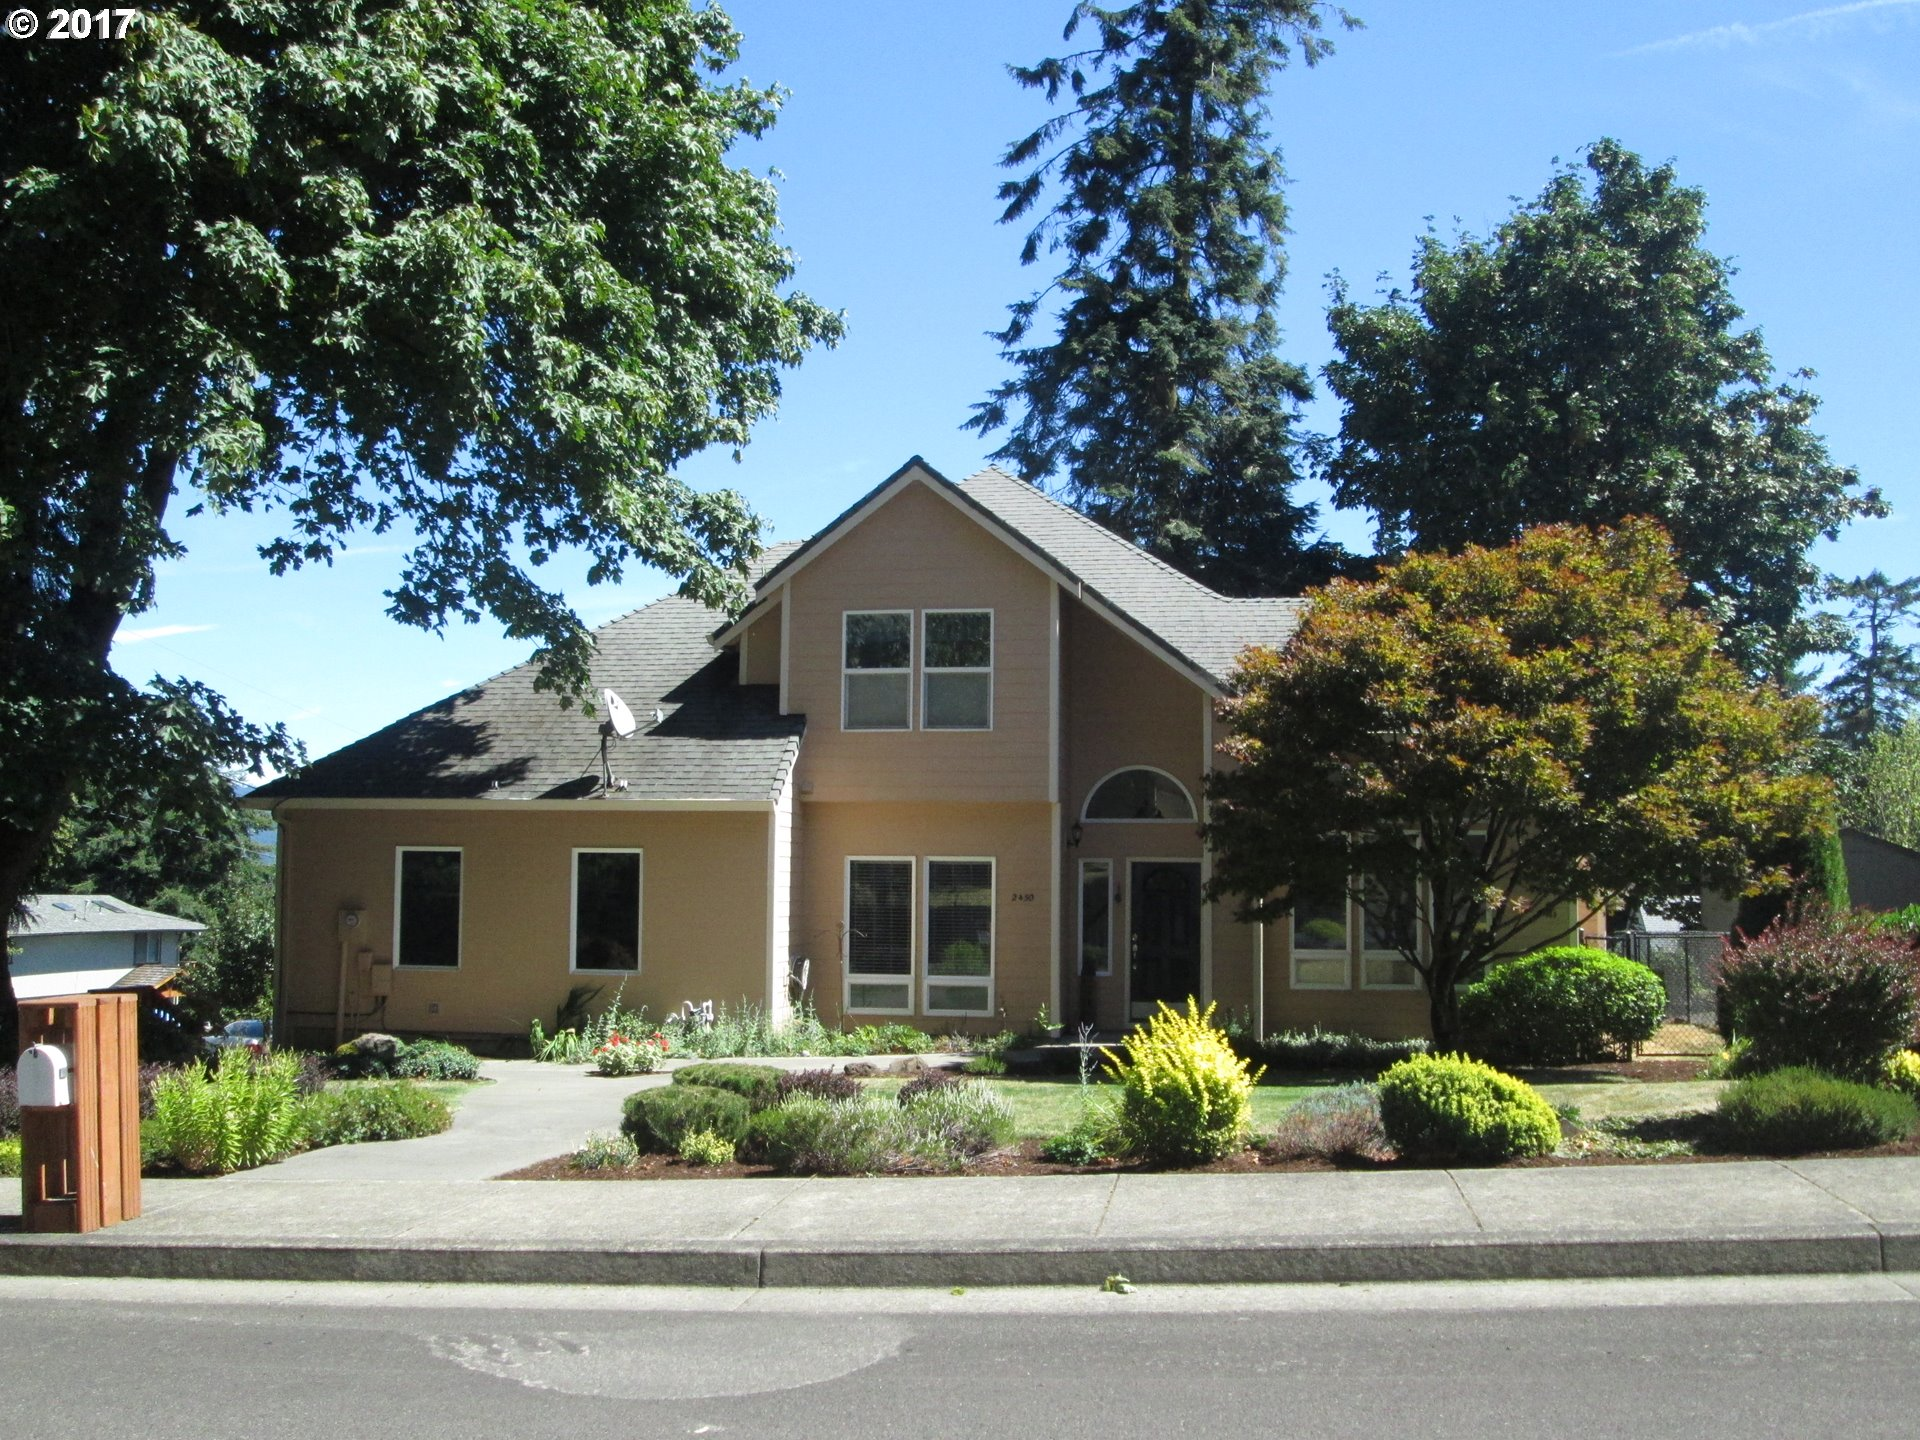 2450 7TH ST, Columbia City, OR 97018